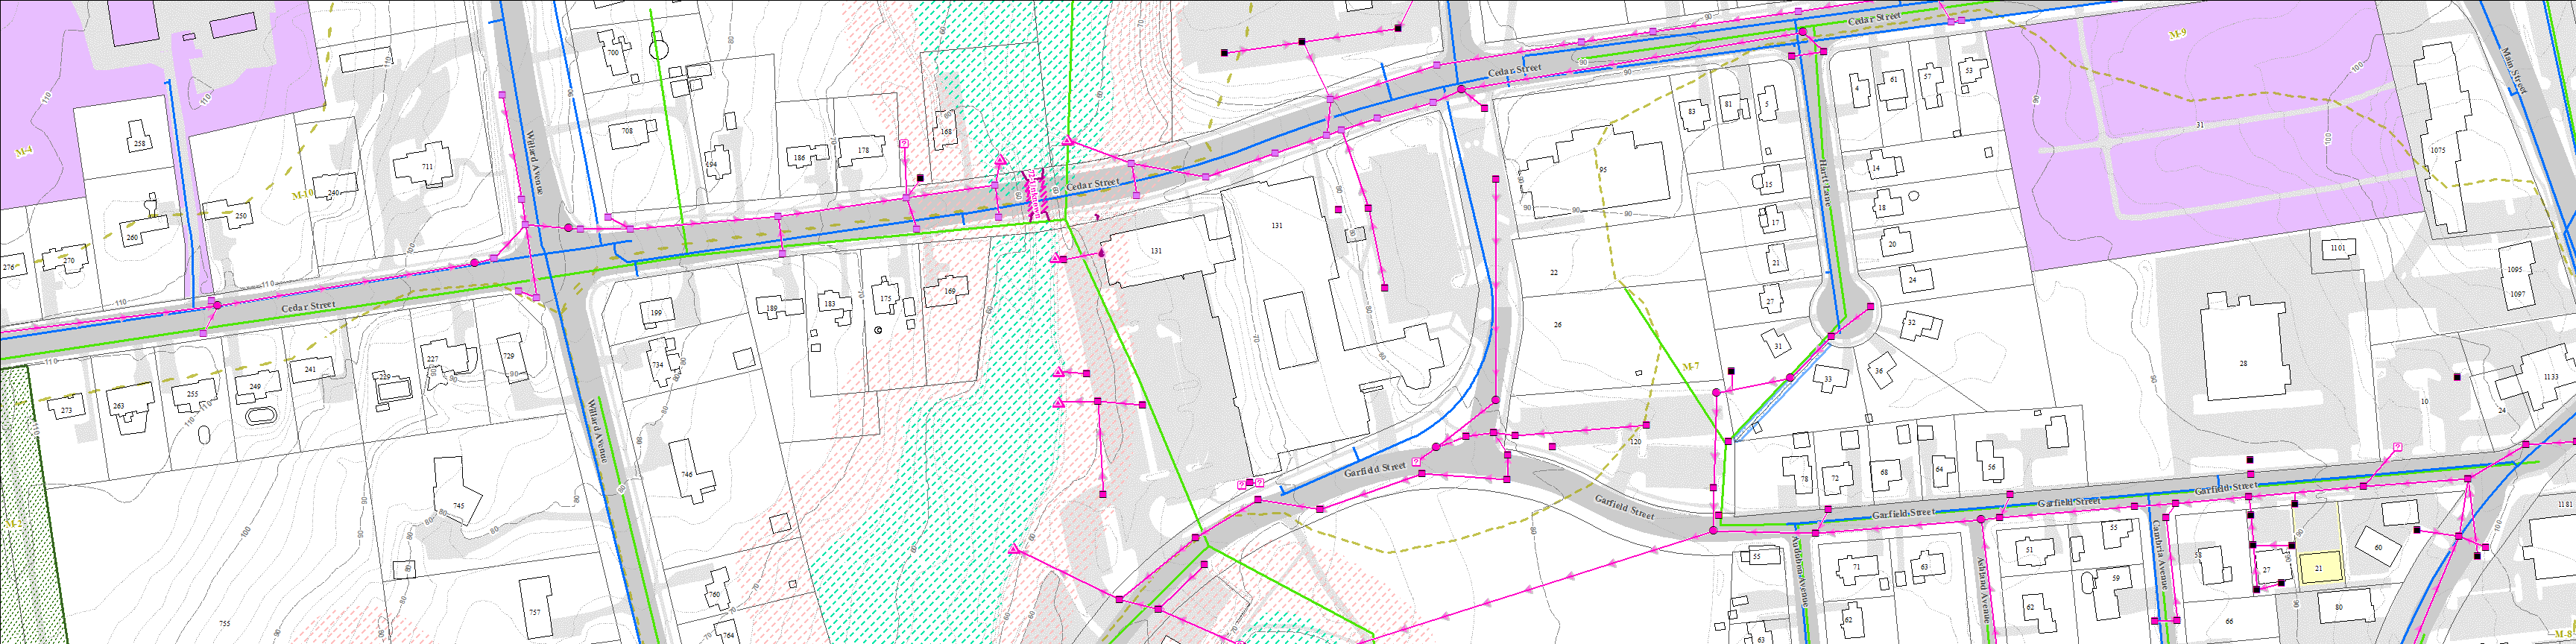 Graphic representation of the topography and subsurface infrastructure around Town Hall